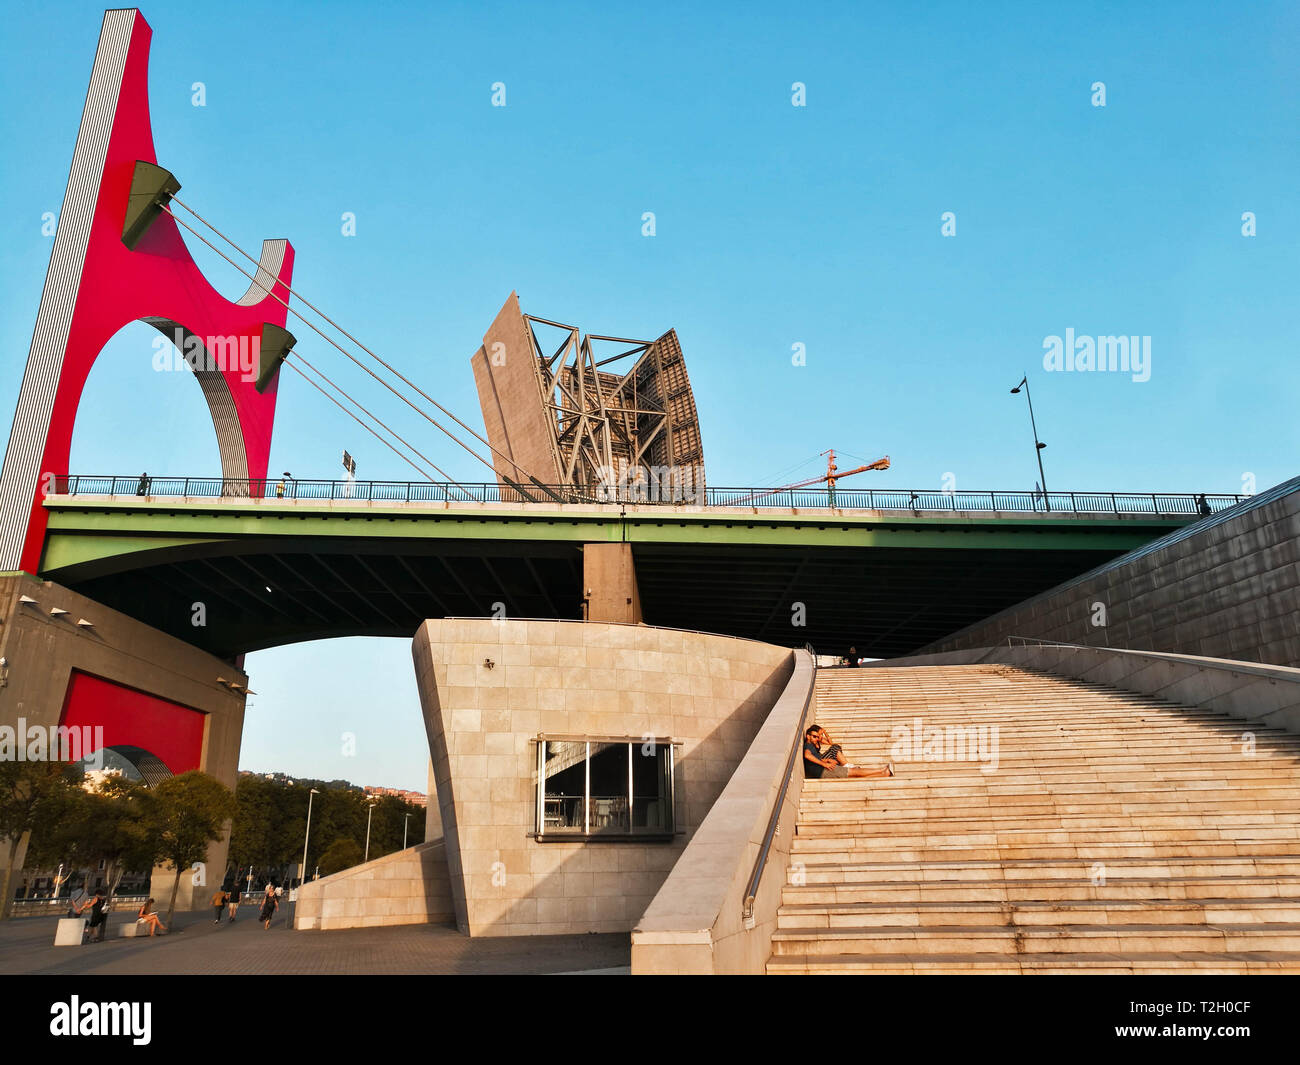 Basque country - september 11 - 2018: Couple resting at the stairs of la salve zubia bridge in the spanish city of Bilbao. Stock Photo